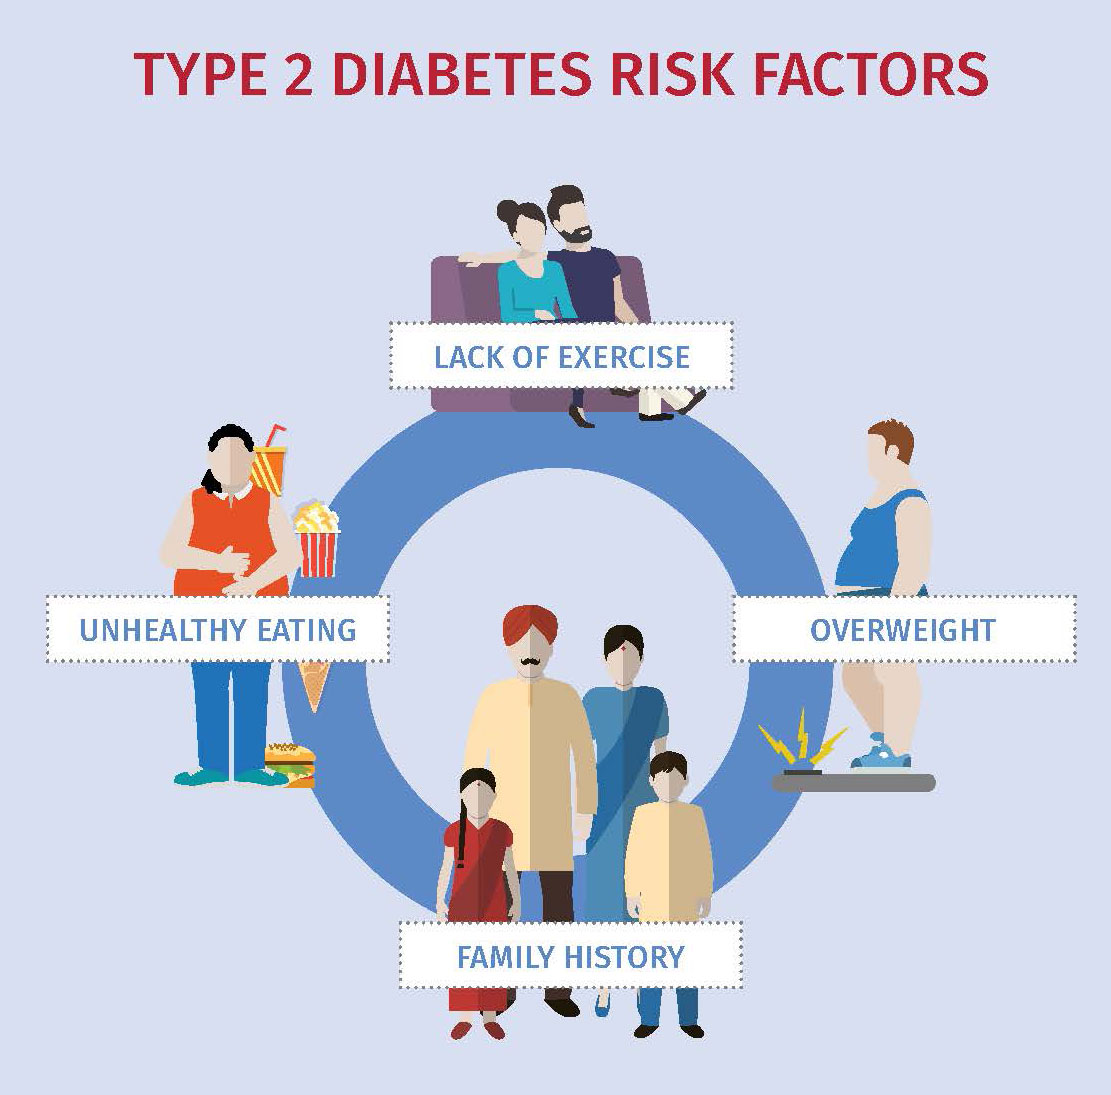 IDF risk factors T2D infographic